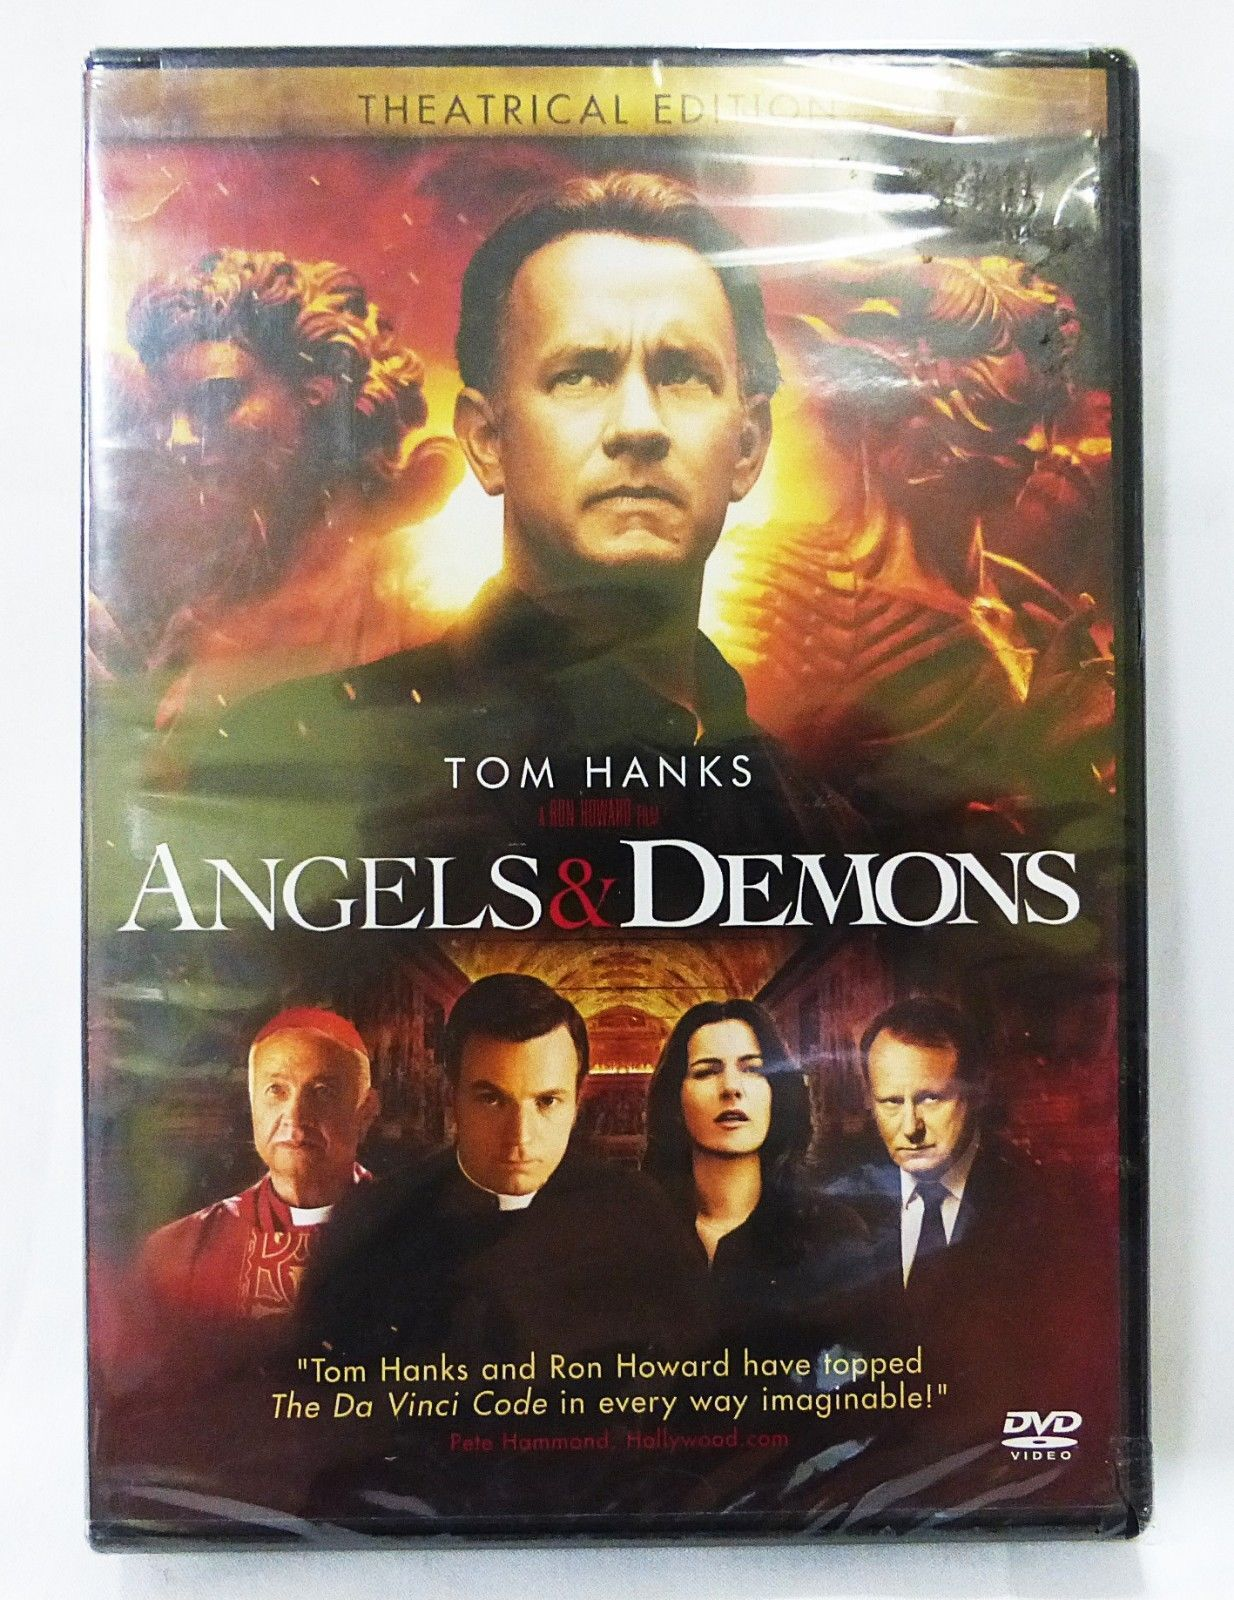 Angels & Demons DVD theatrical edition tom hanks 2009